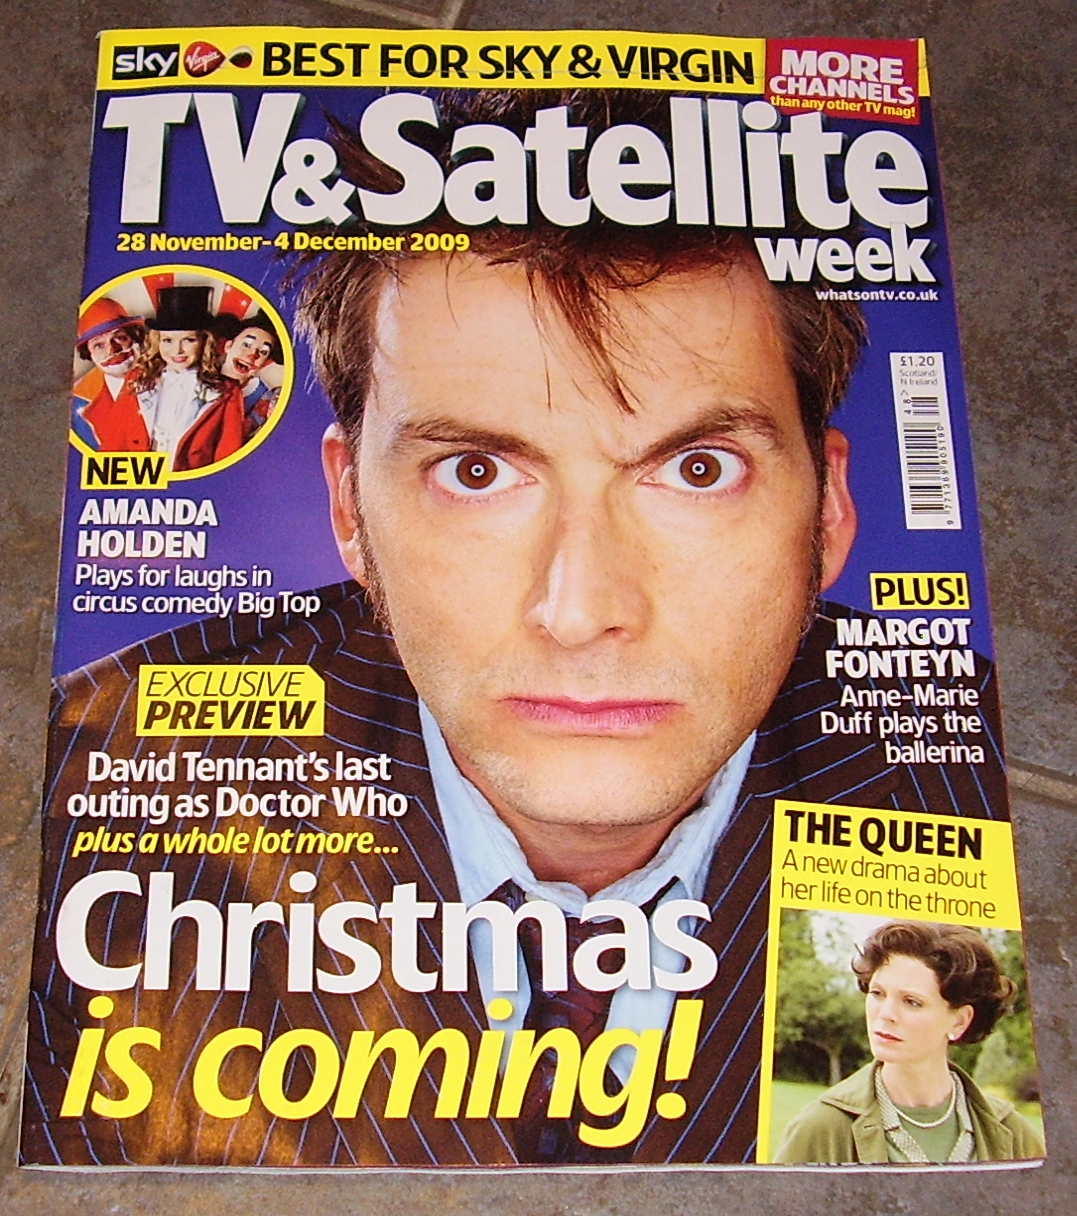 TV & Satellite Week 28 nov - 4 dec